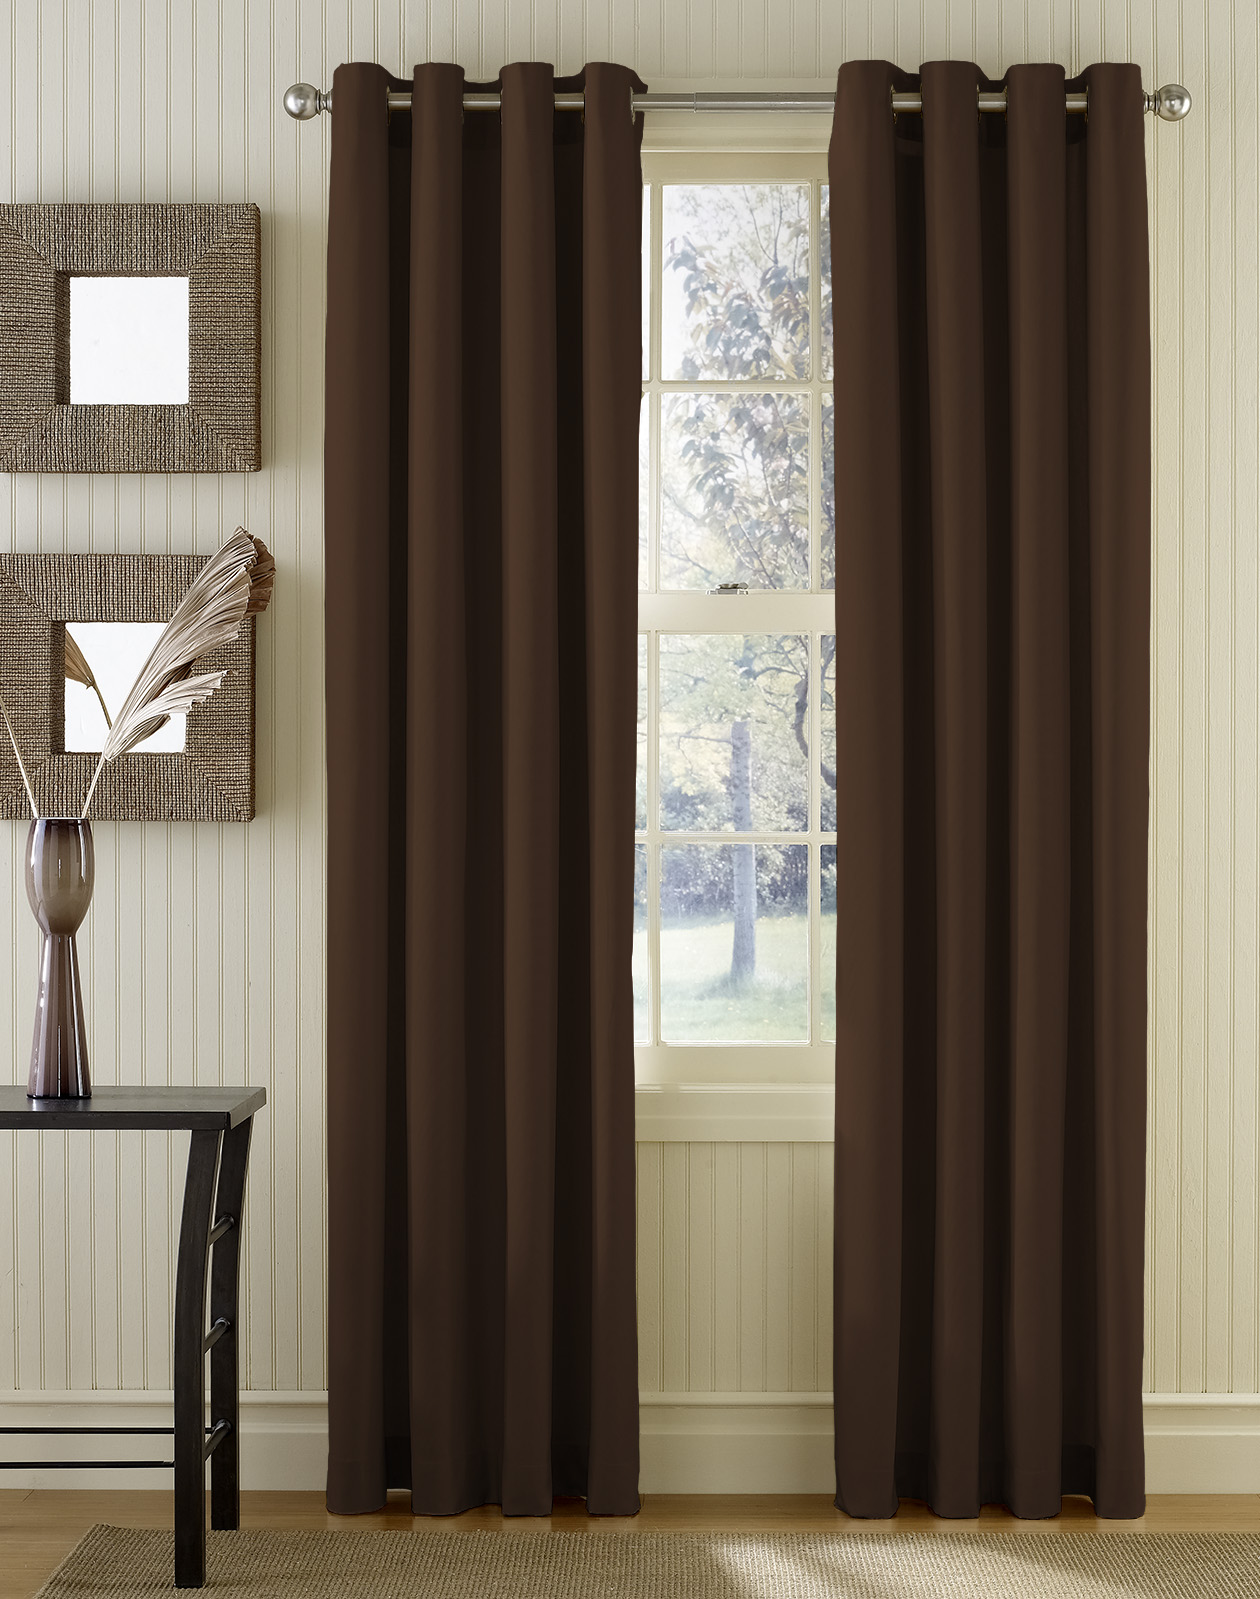 Curtain interior design what is minimalist curtain design for Curtains in a living room